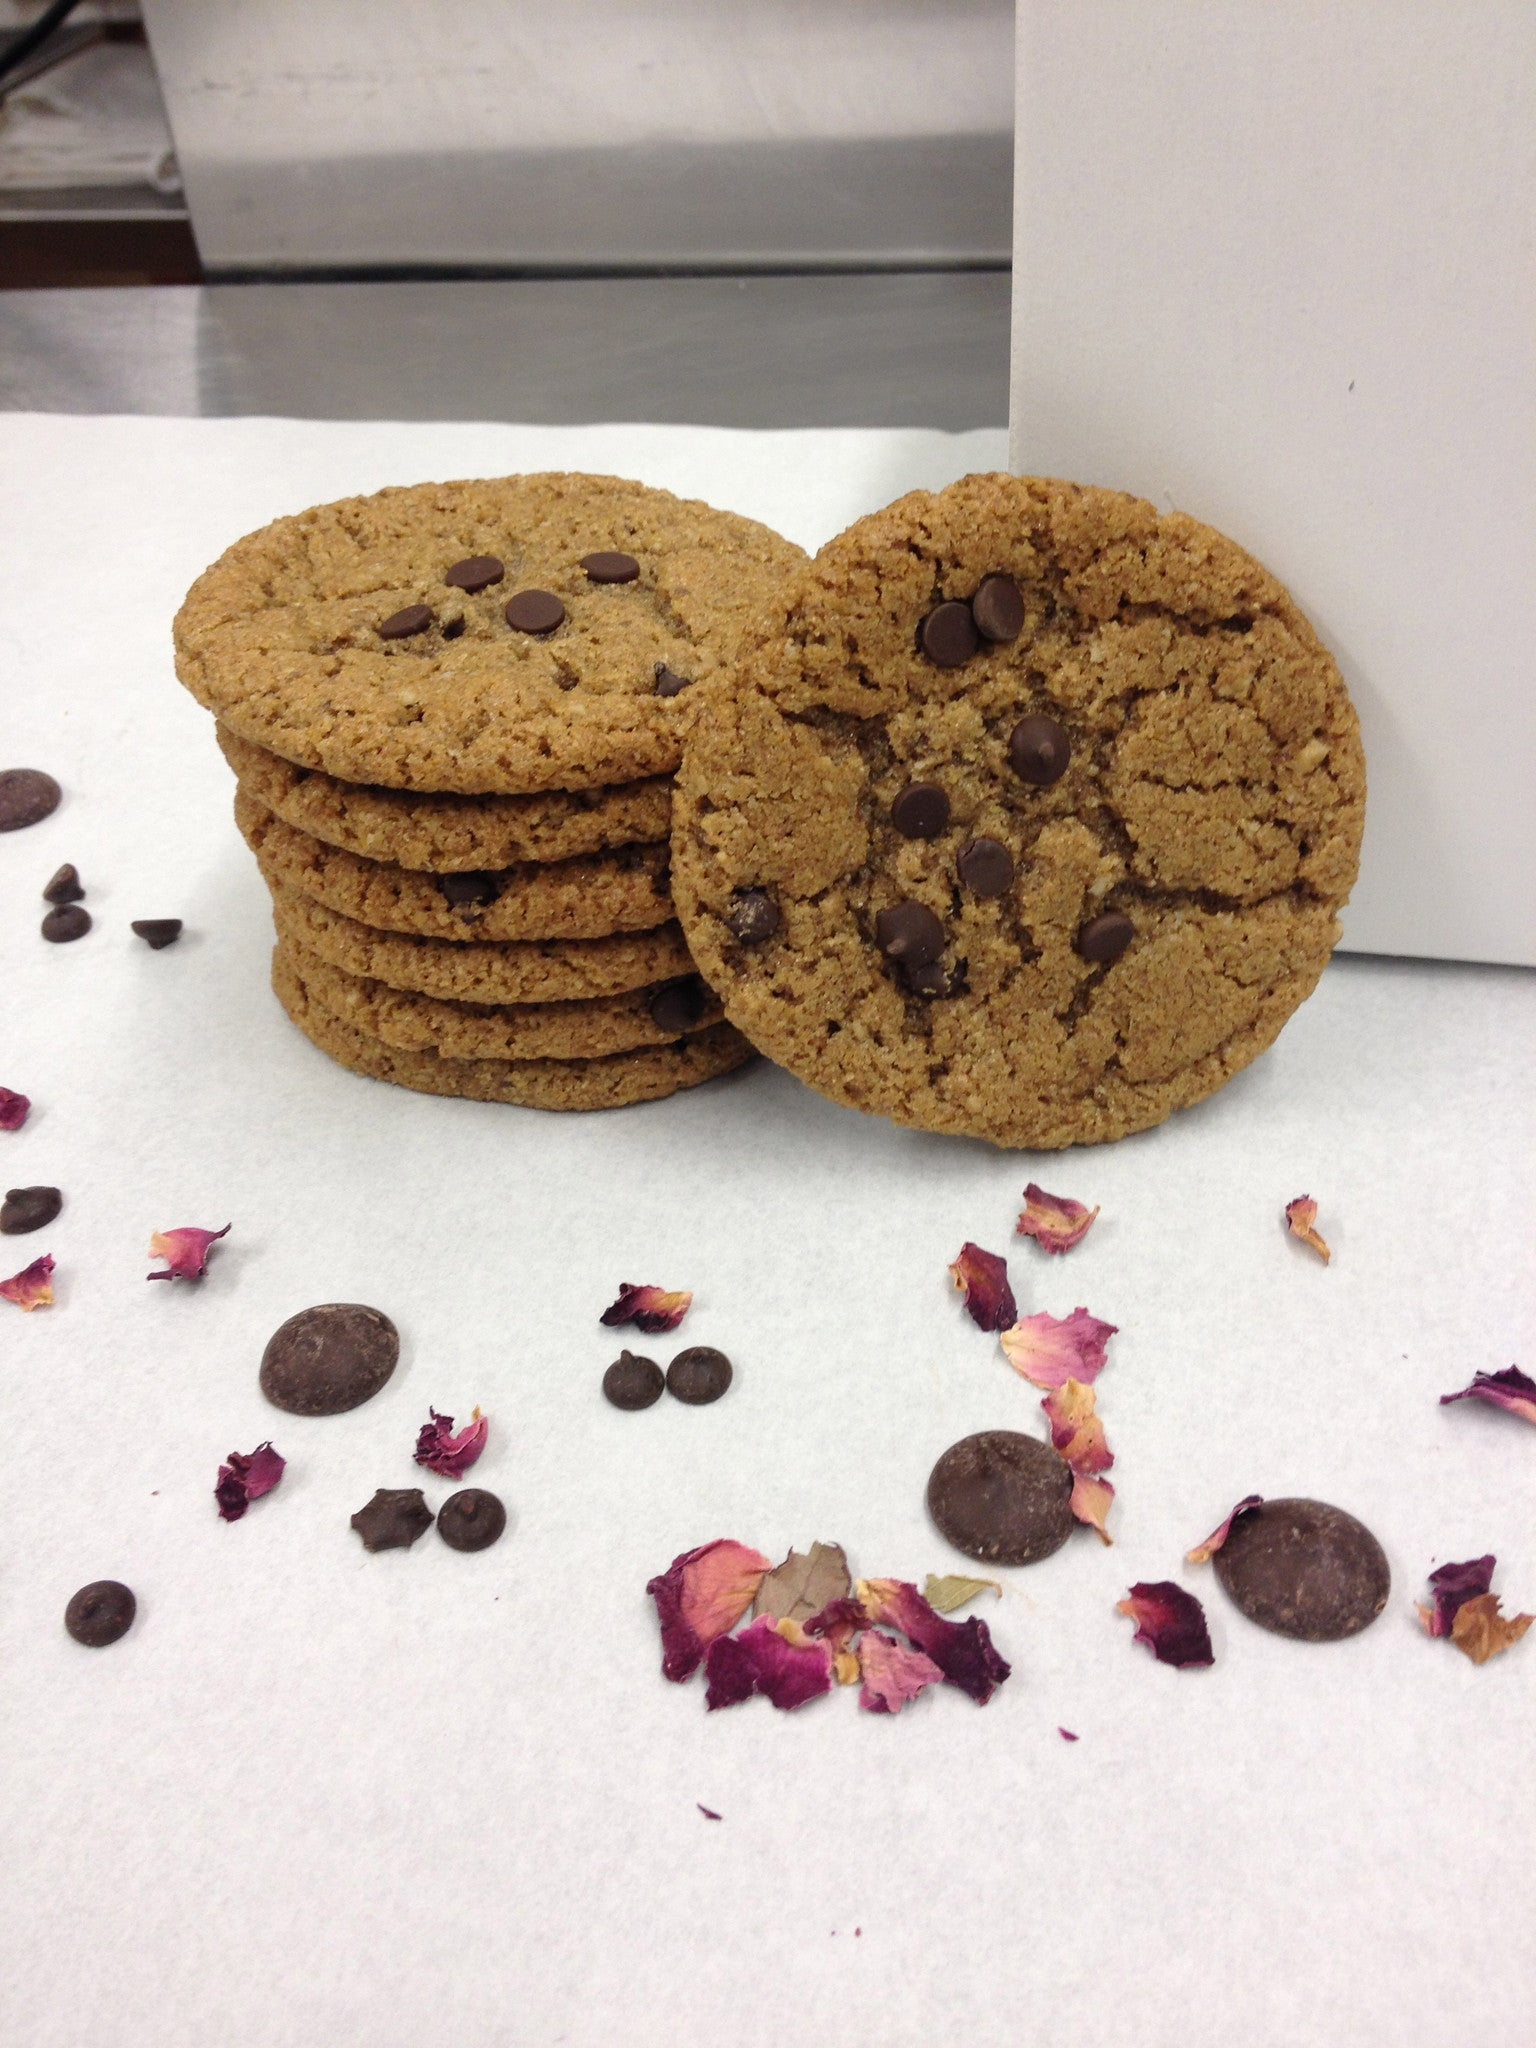 Heirloom Chocolate Chip Cookie - Nut Free @